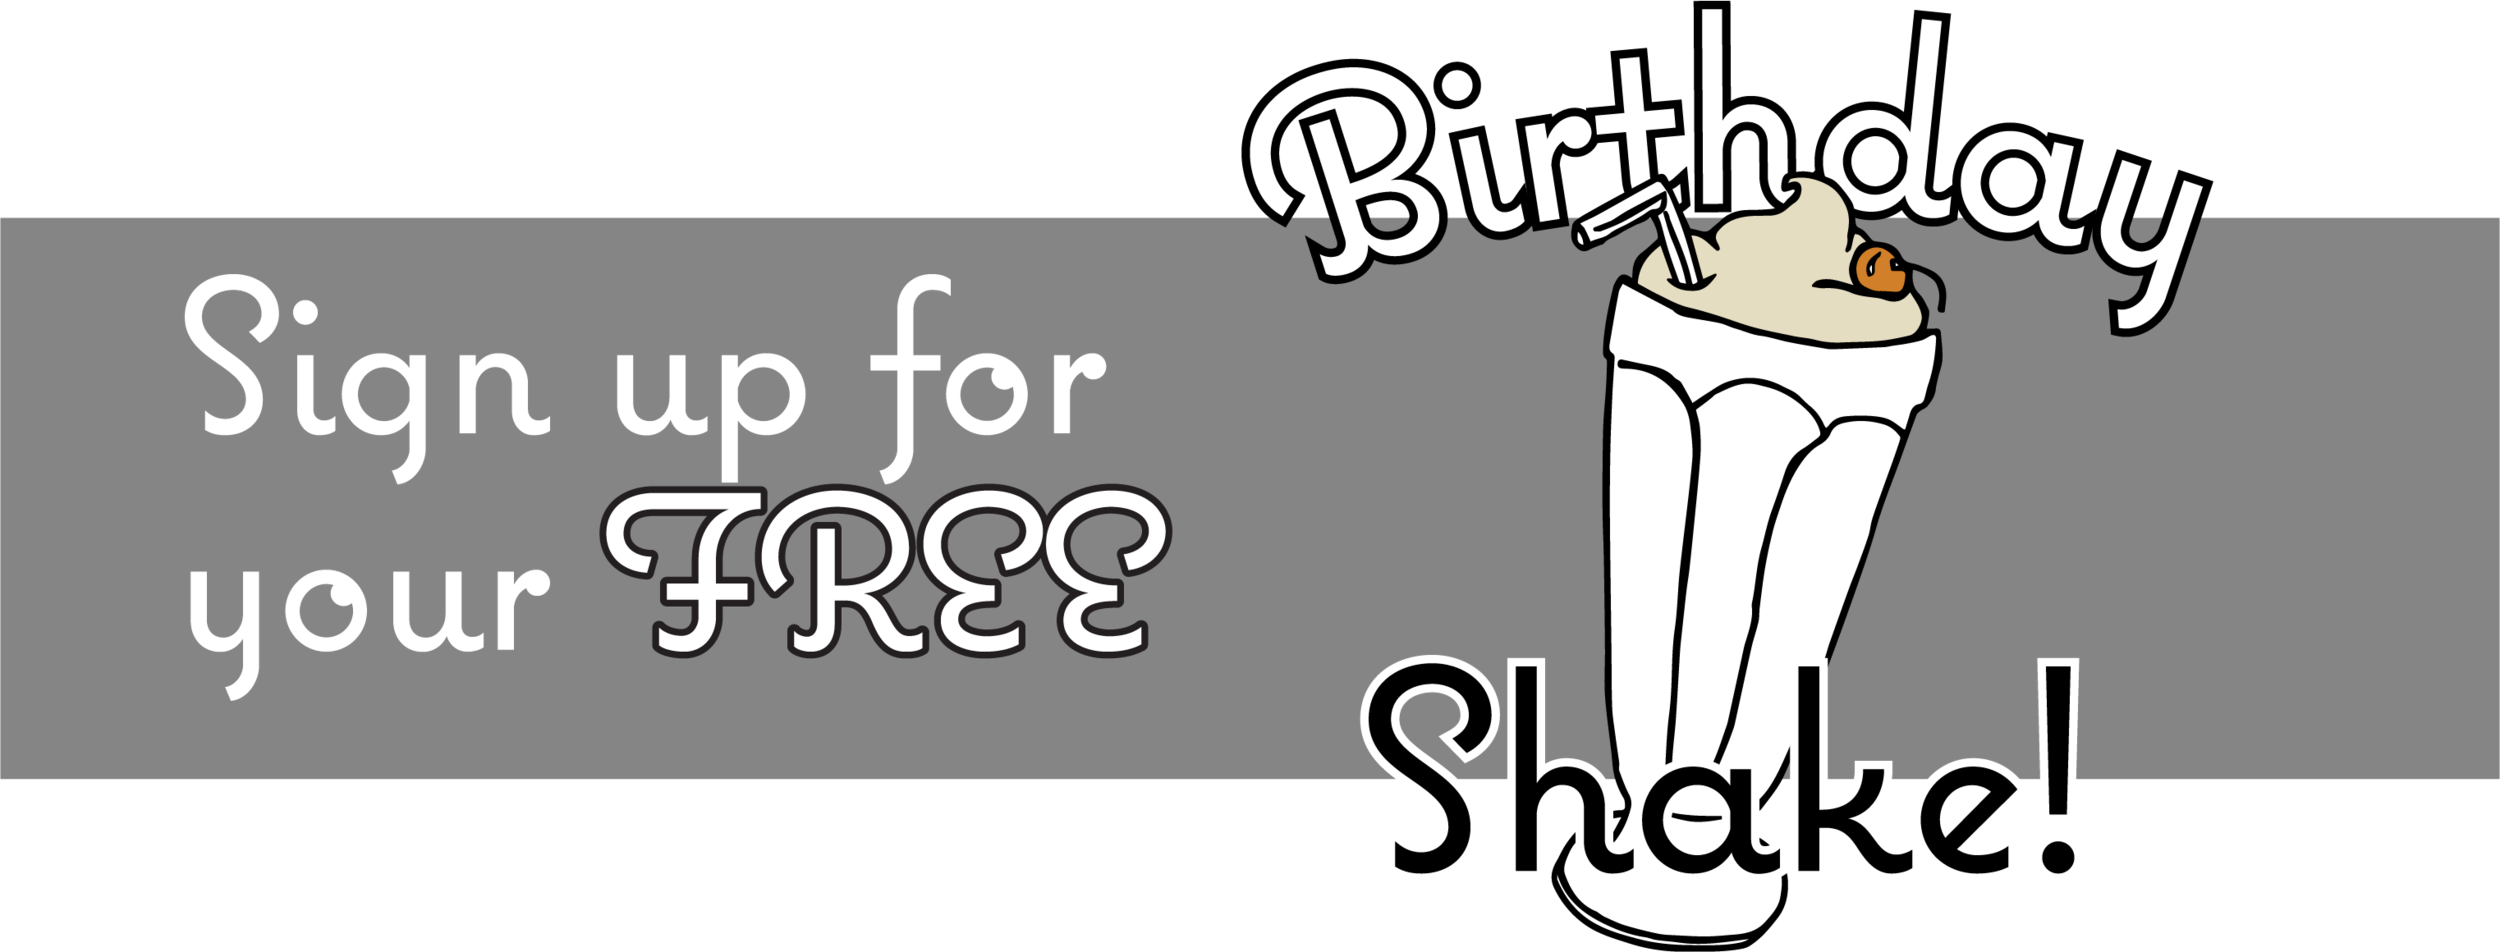 Sign Up for your Free Birthday Shake.png